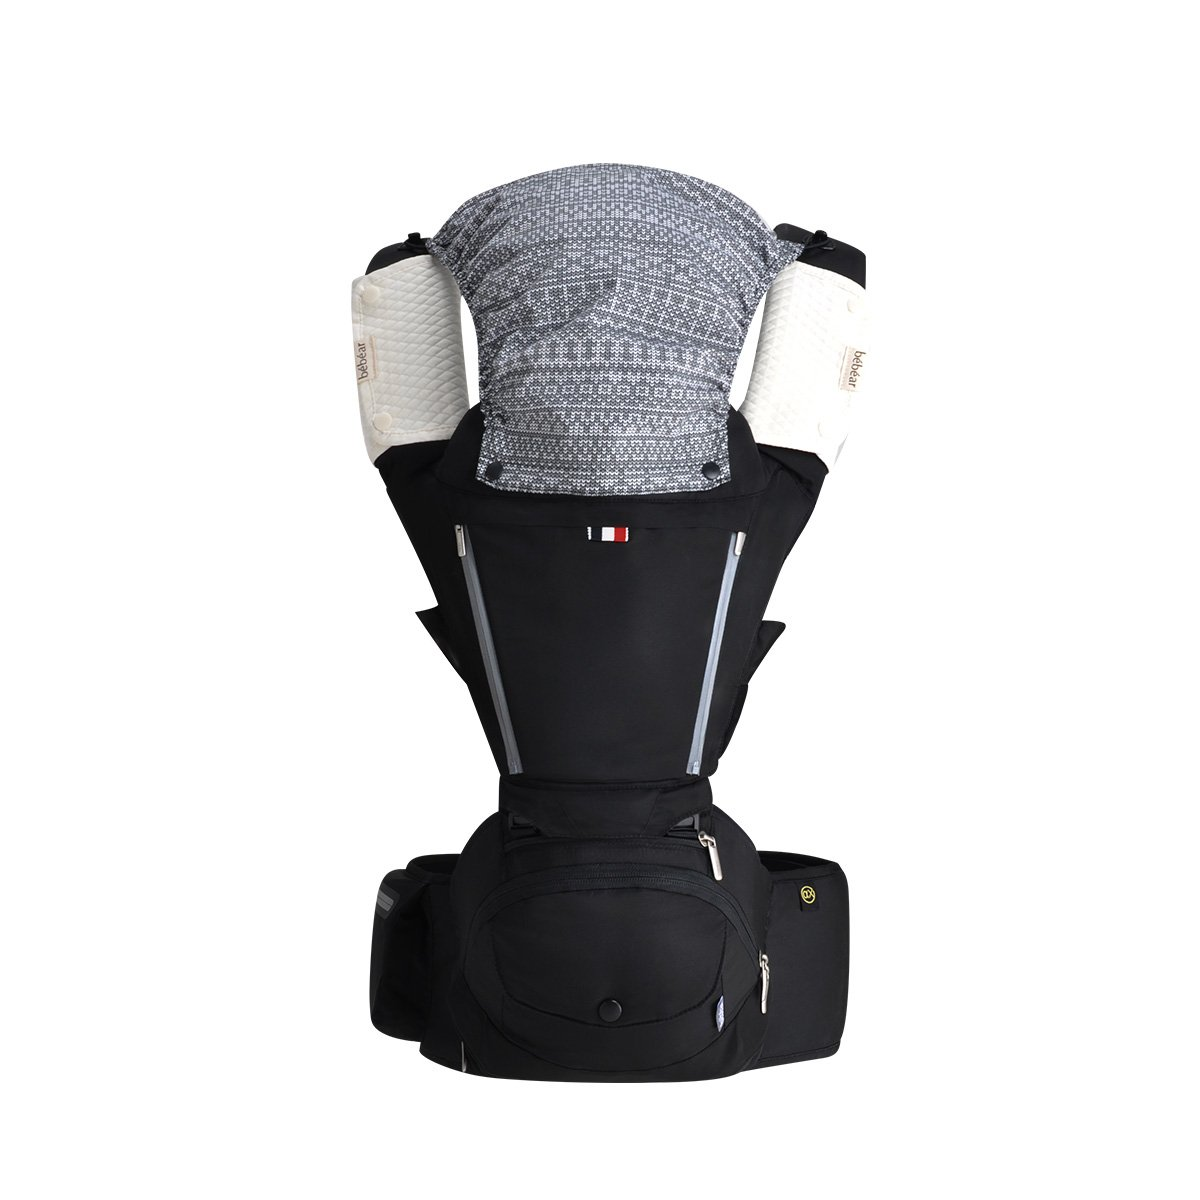 Bebamour SIX-Position Baby Carrier Ergonomic Baby & Child Carrier for All Seasons, Alphax New Design (Black) CAAX1902